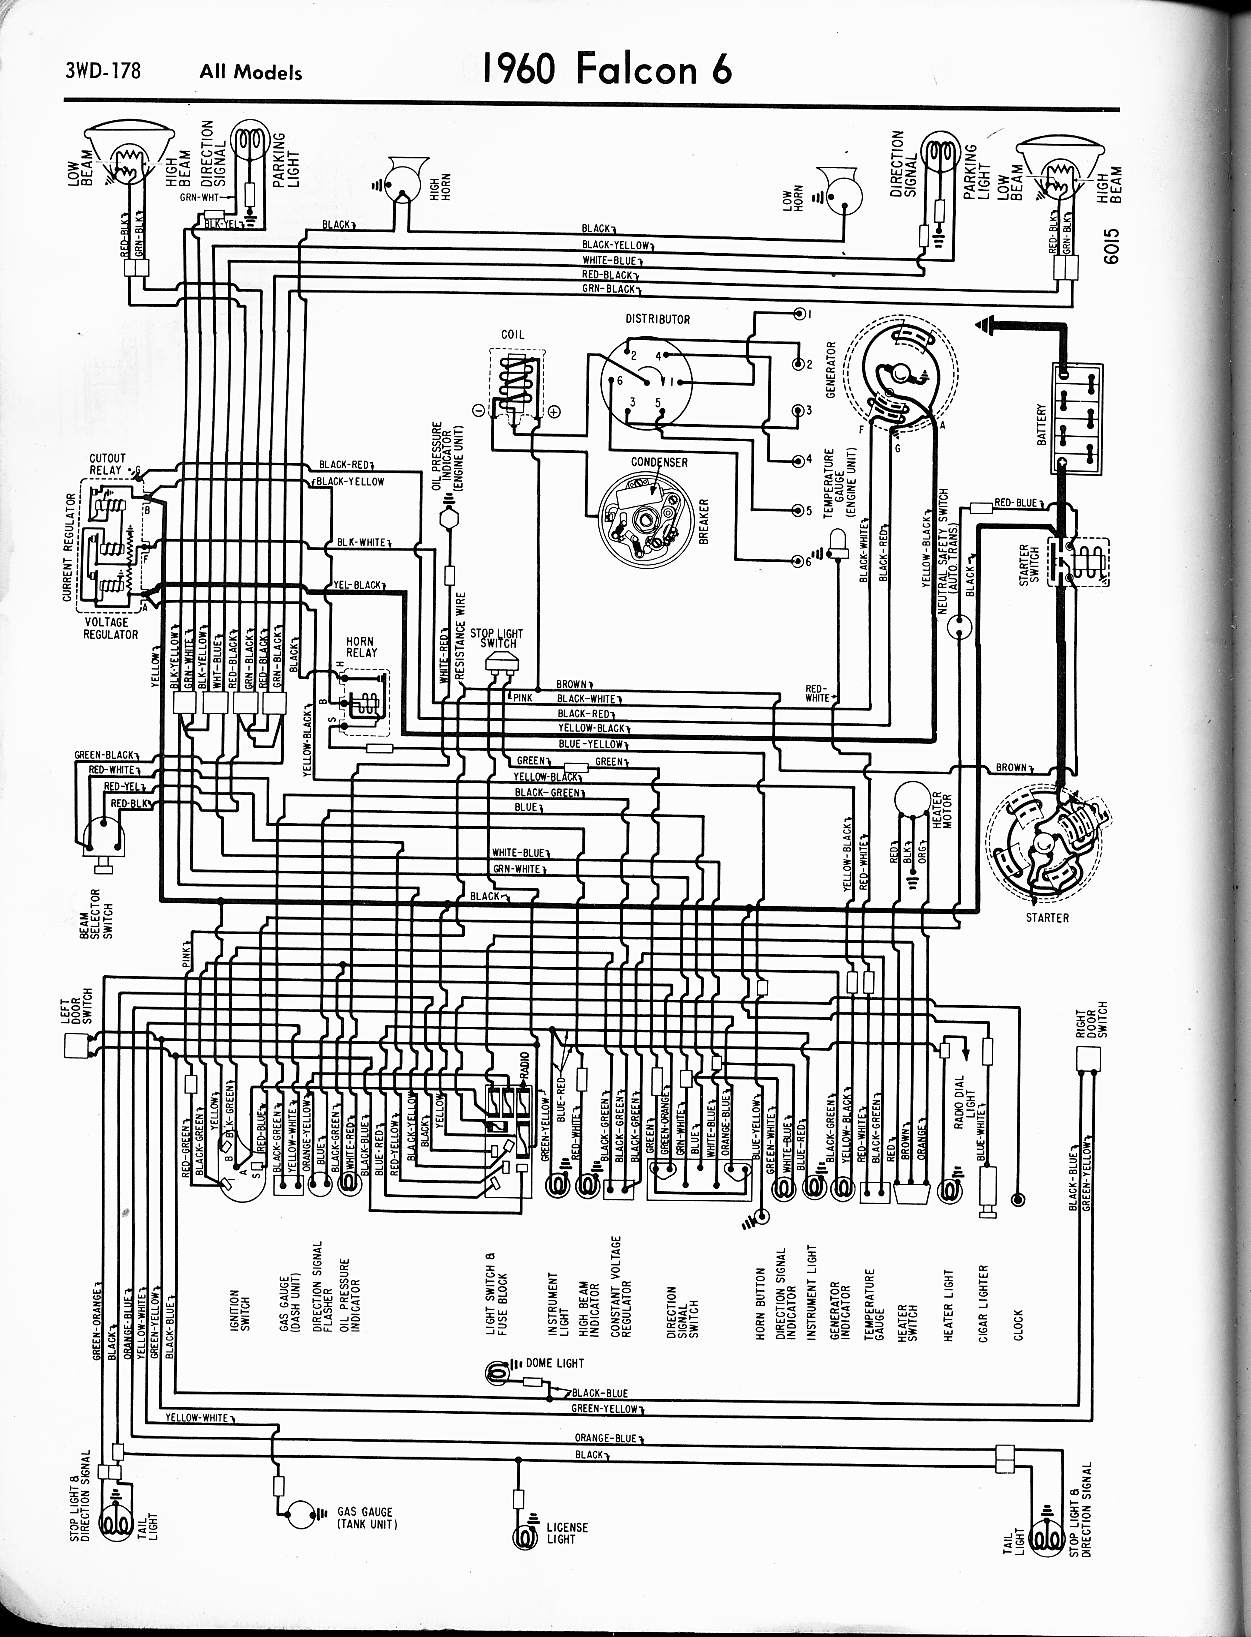 57 65 ford wiring diagrams Ford Electrical Diagram 1960 6 cyl falcon